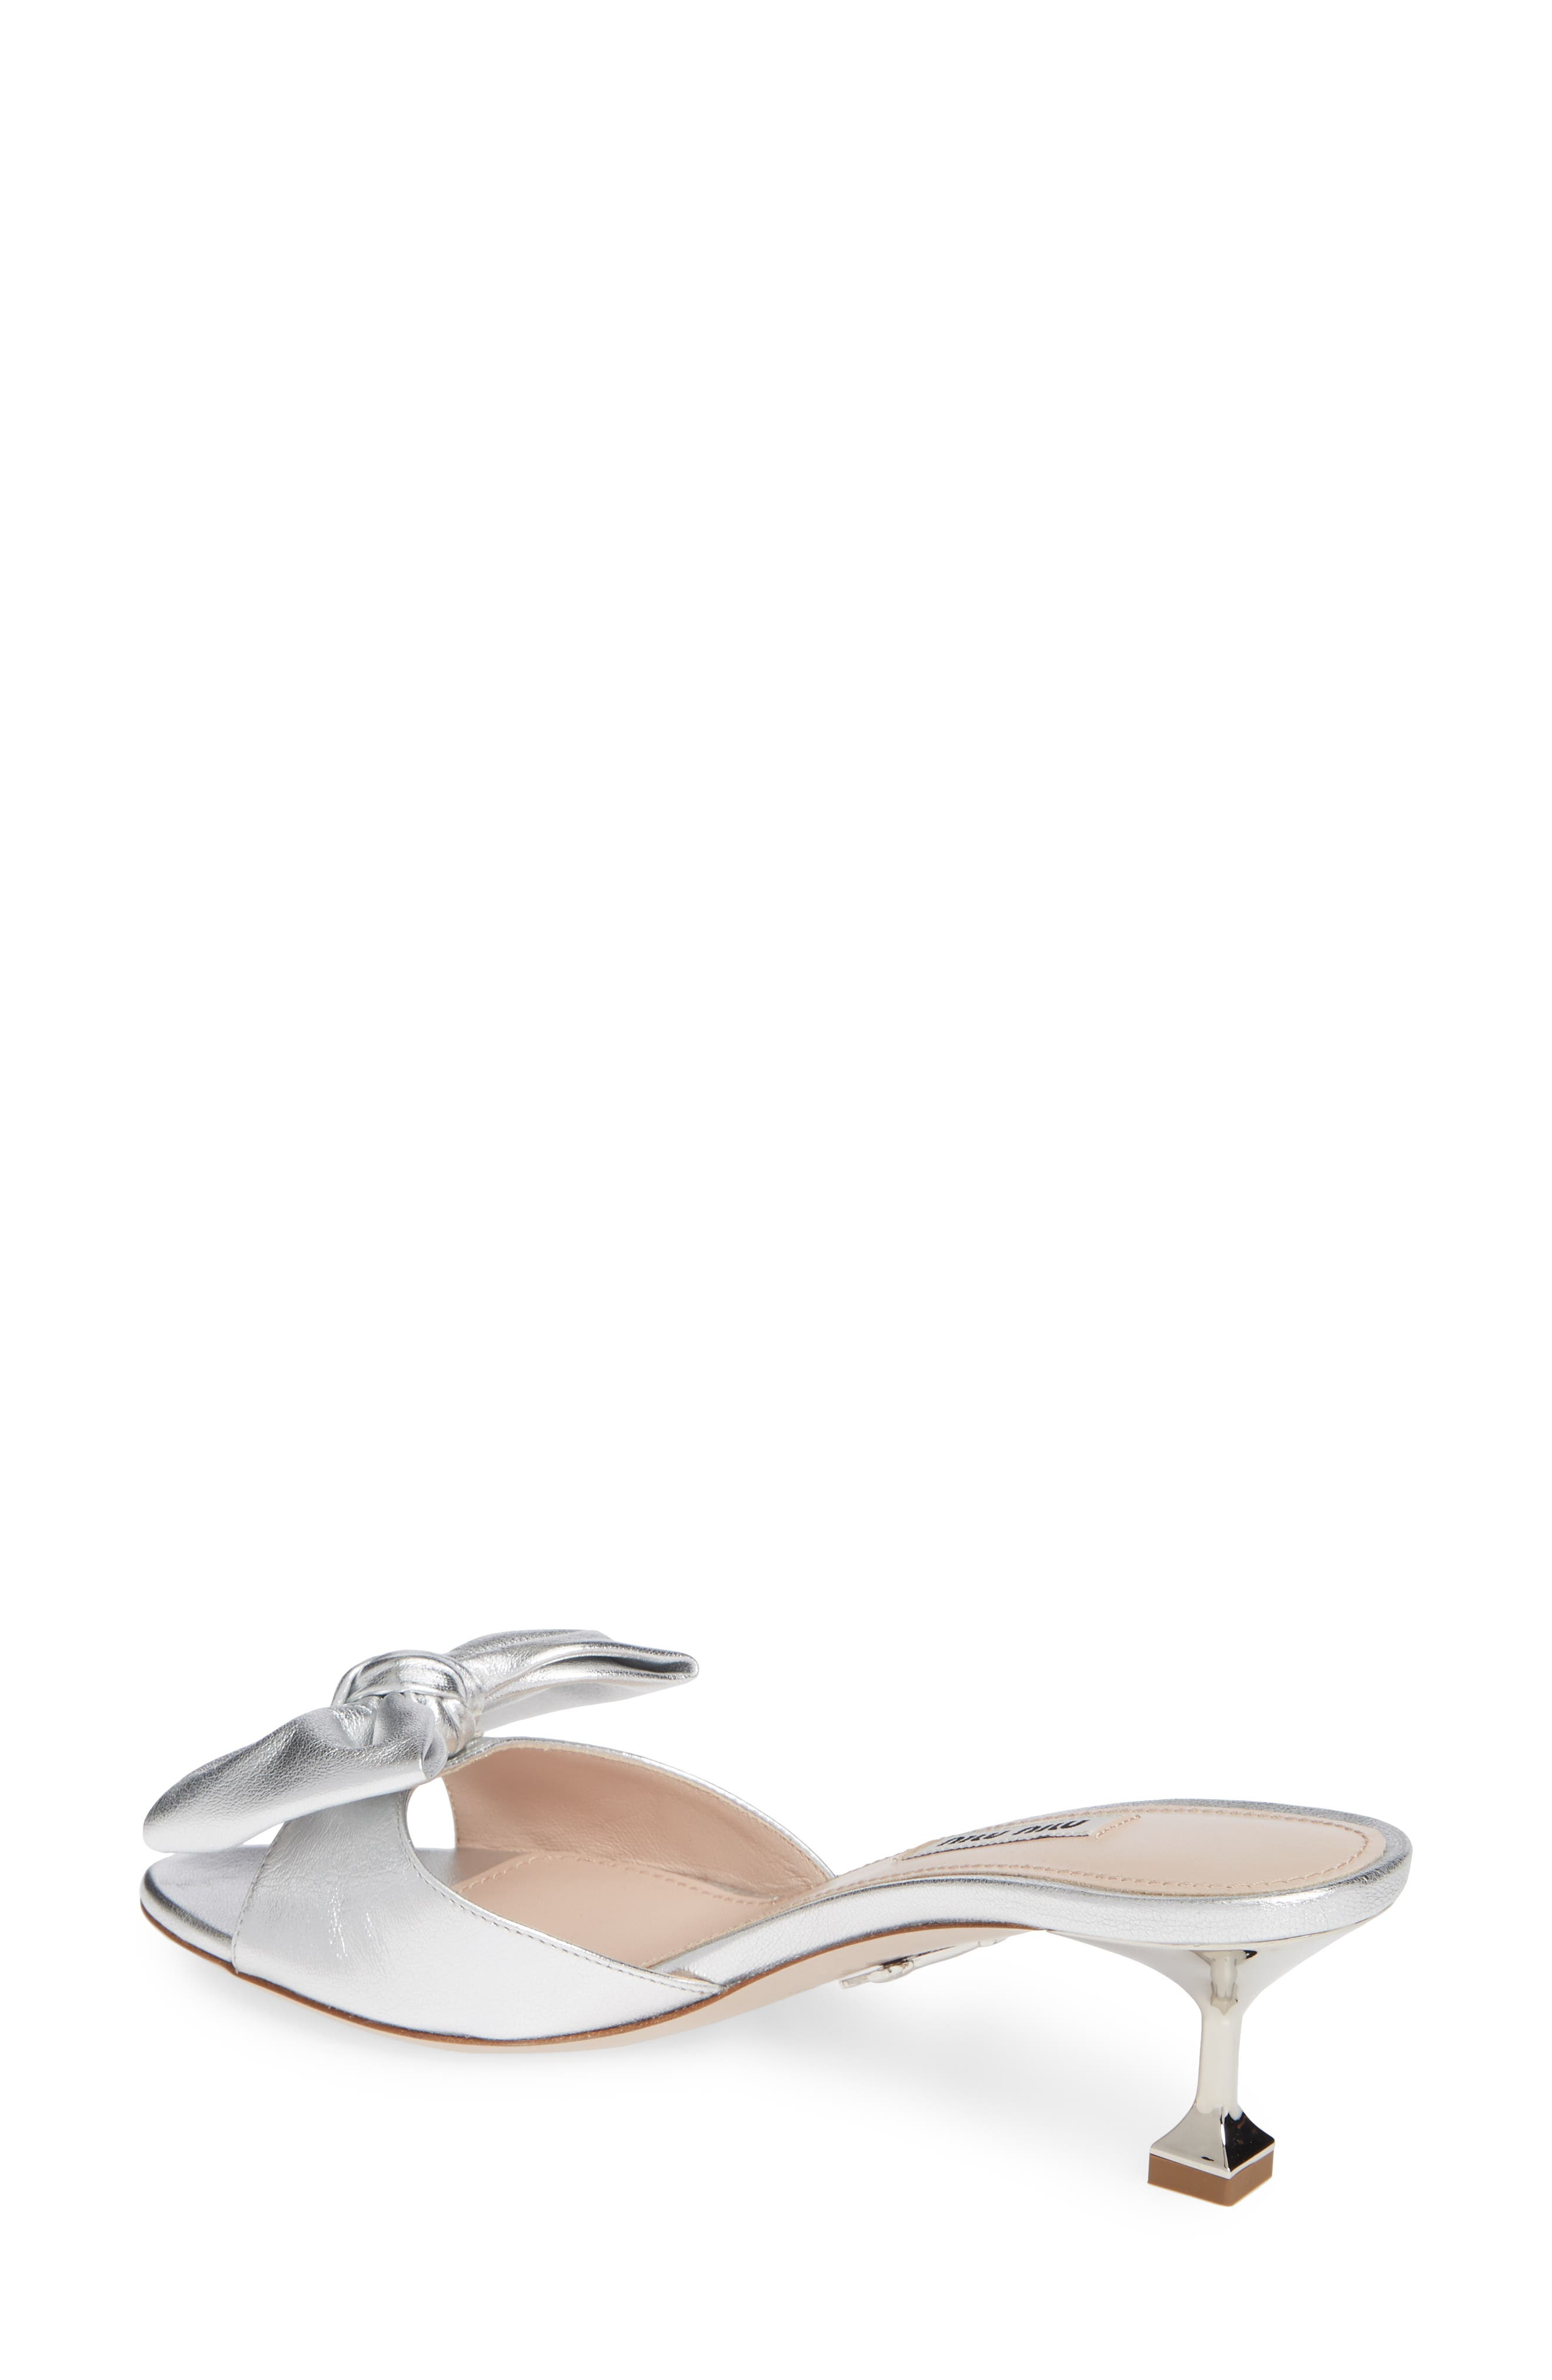 Bow Slide Sandal,                             Alternate thumbnail 2, color,                             SILVER